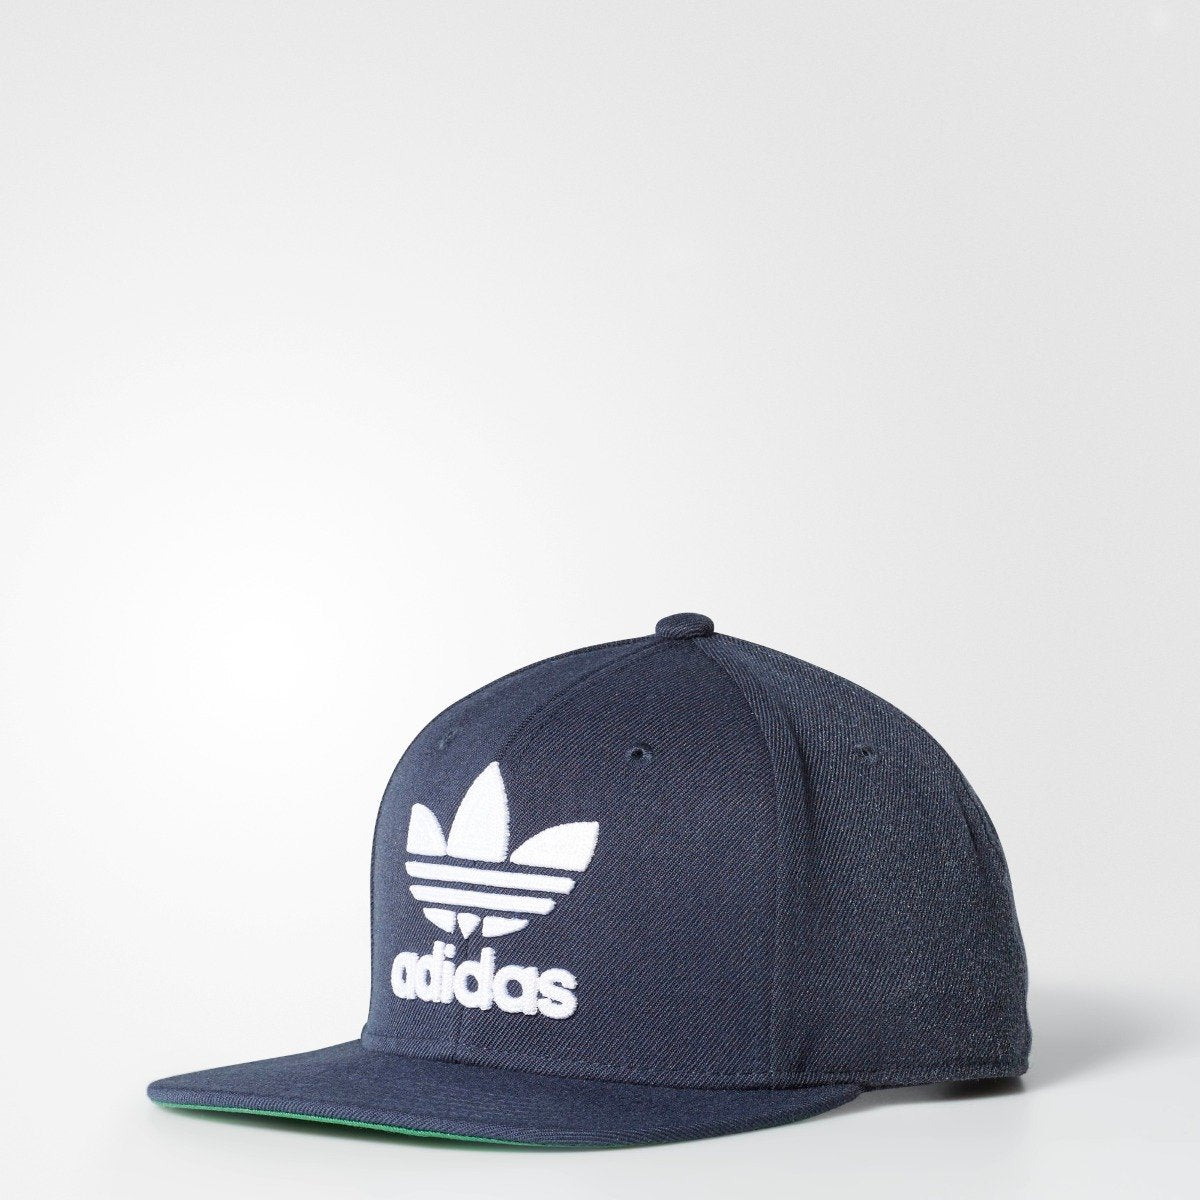 db8267db5c9ae Men s adidas Originals Trefoil Chain Snapback Hat Collegiate Navy ...